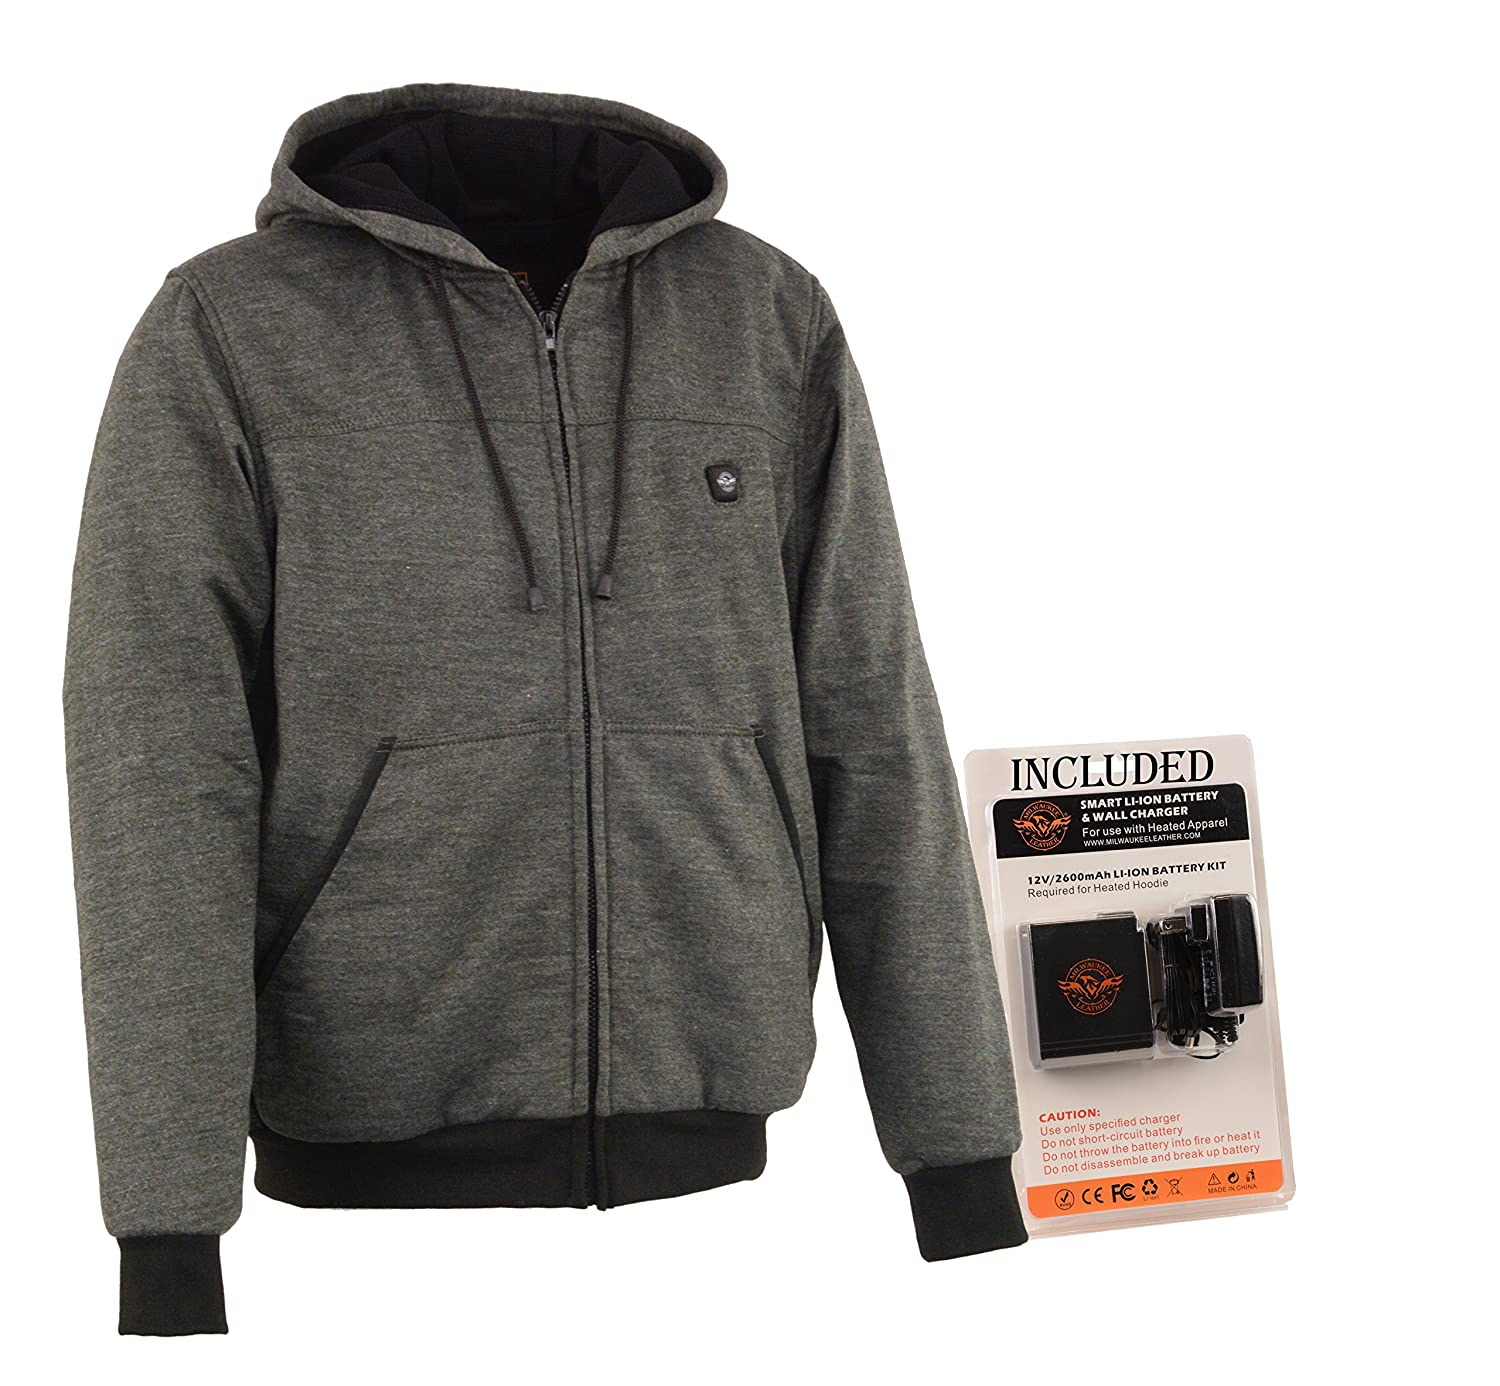 Milwaukee Performance-Men's Heated Hoodie w/Front&Back Heating Elements-BATTERY PACK INCLUDED-GREY-MEDIUM (MPM1713-SET-GREY-MD)